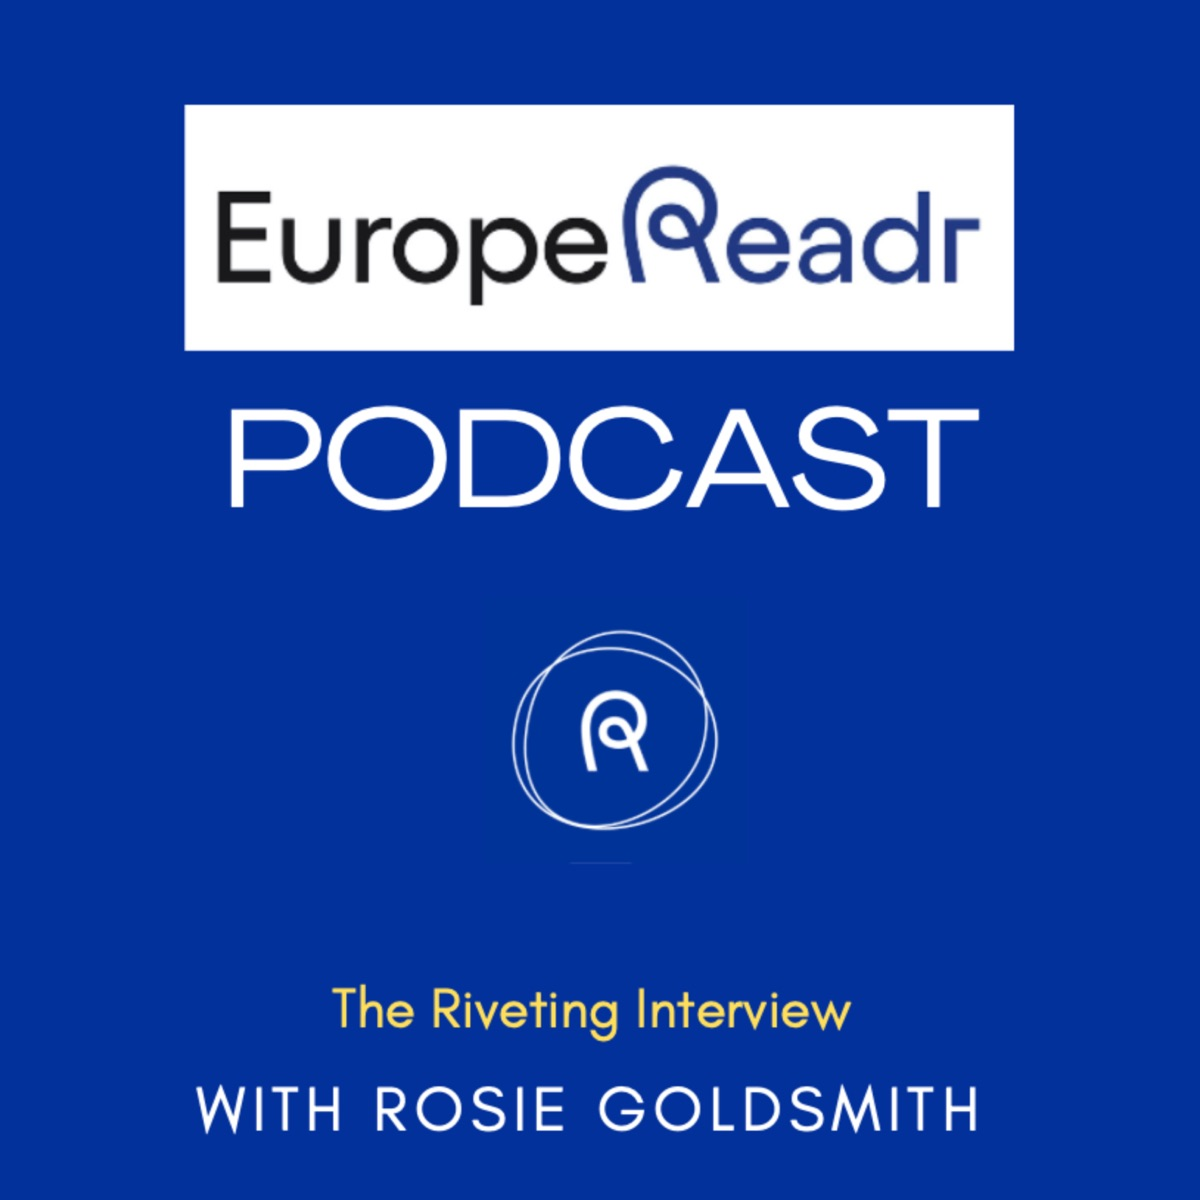 Europe Readr Podcast: The Riveting Interview